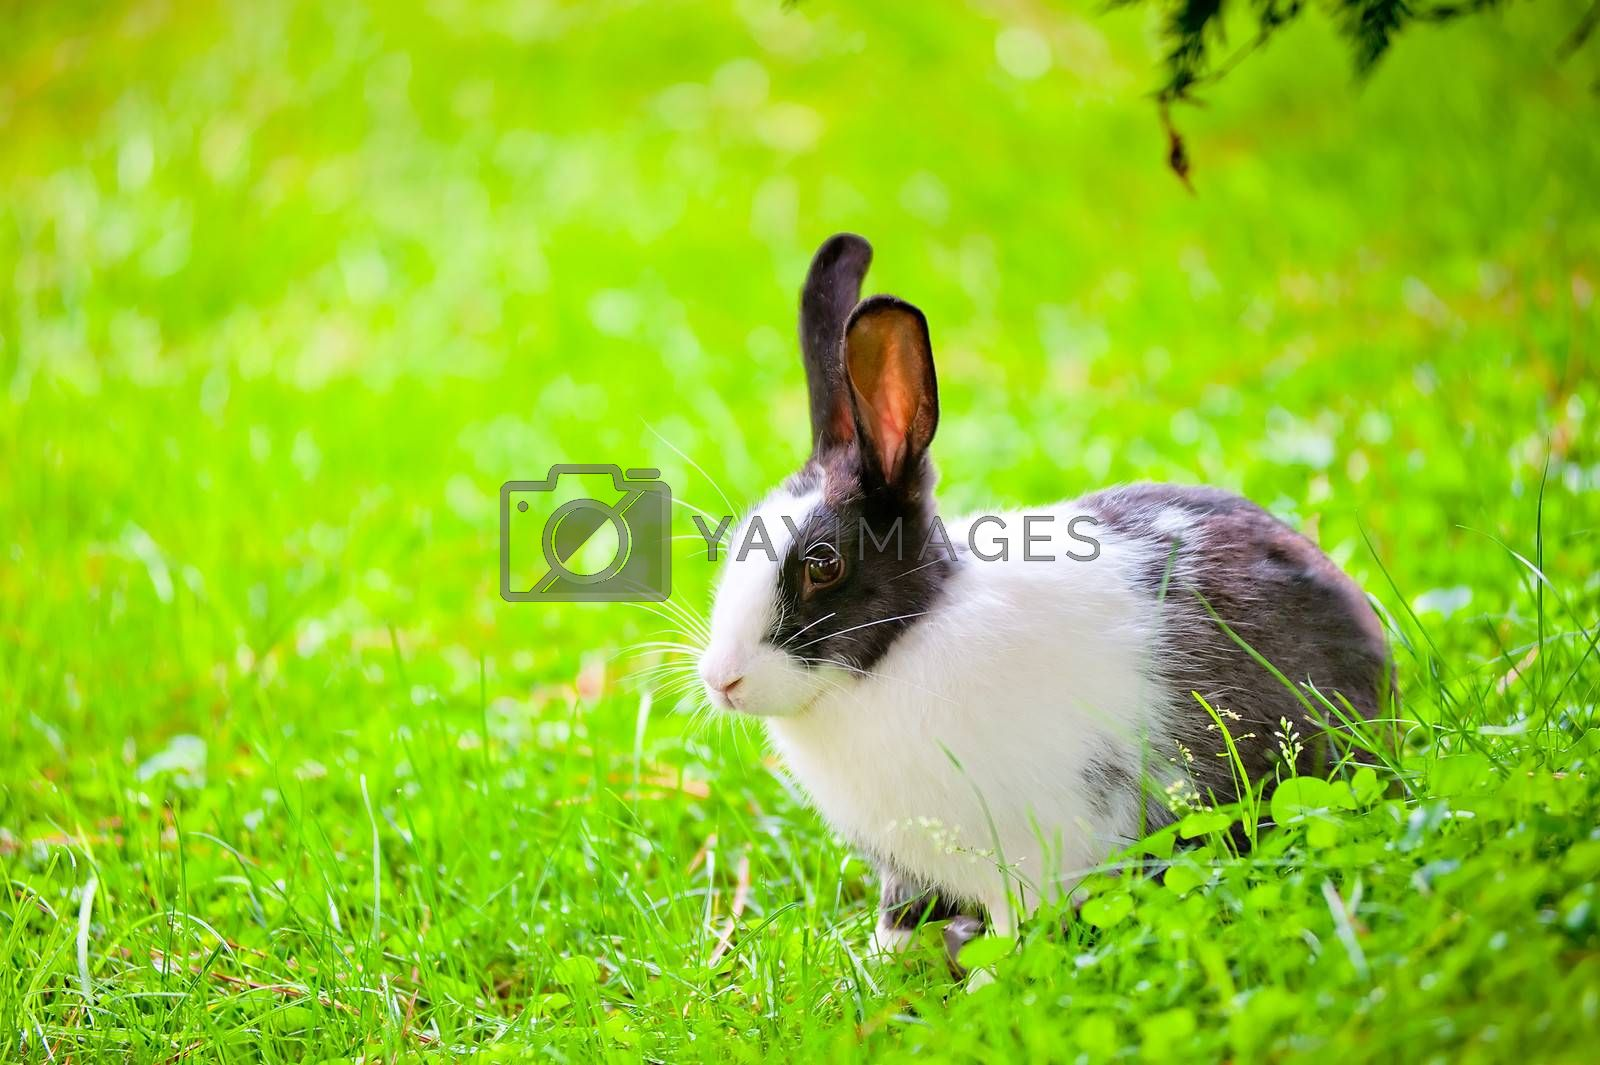 black-and-white rabbit sitting on the green grass with raised ears